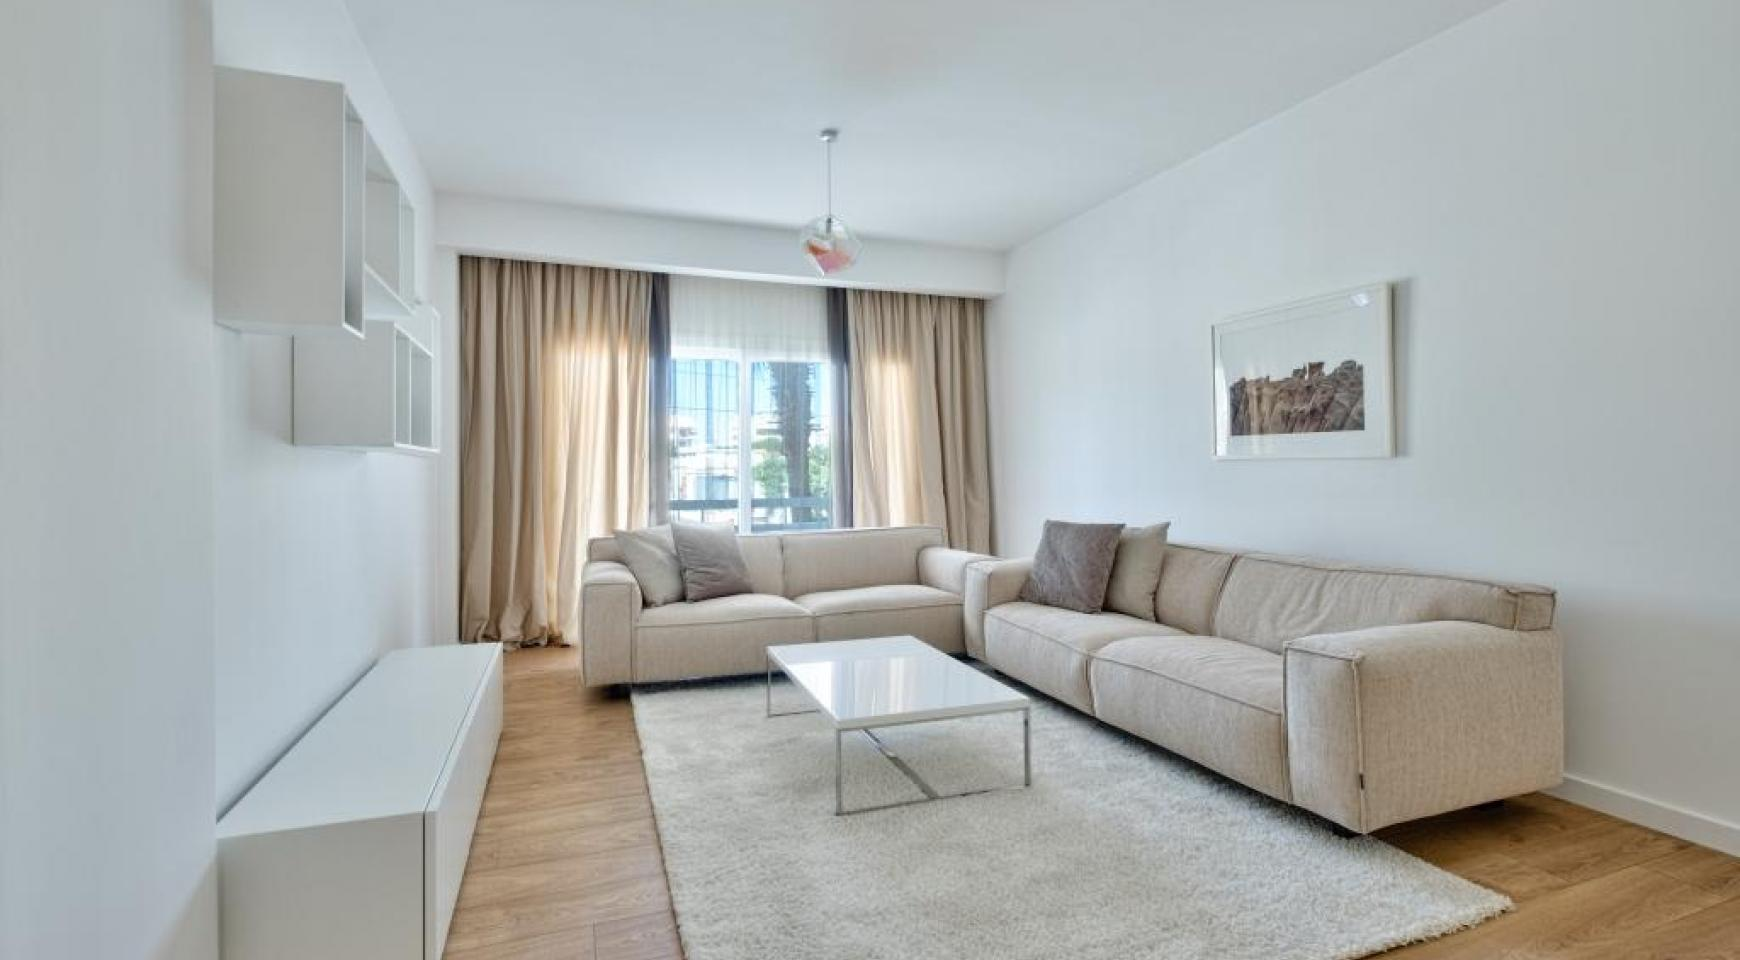 Modern 3 bedroom apartment situated in the Crown Plaza area - 2